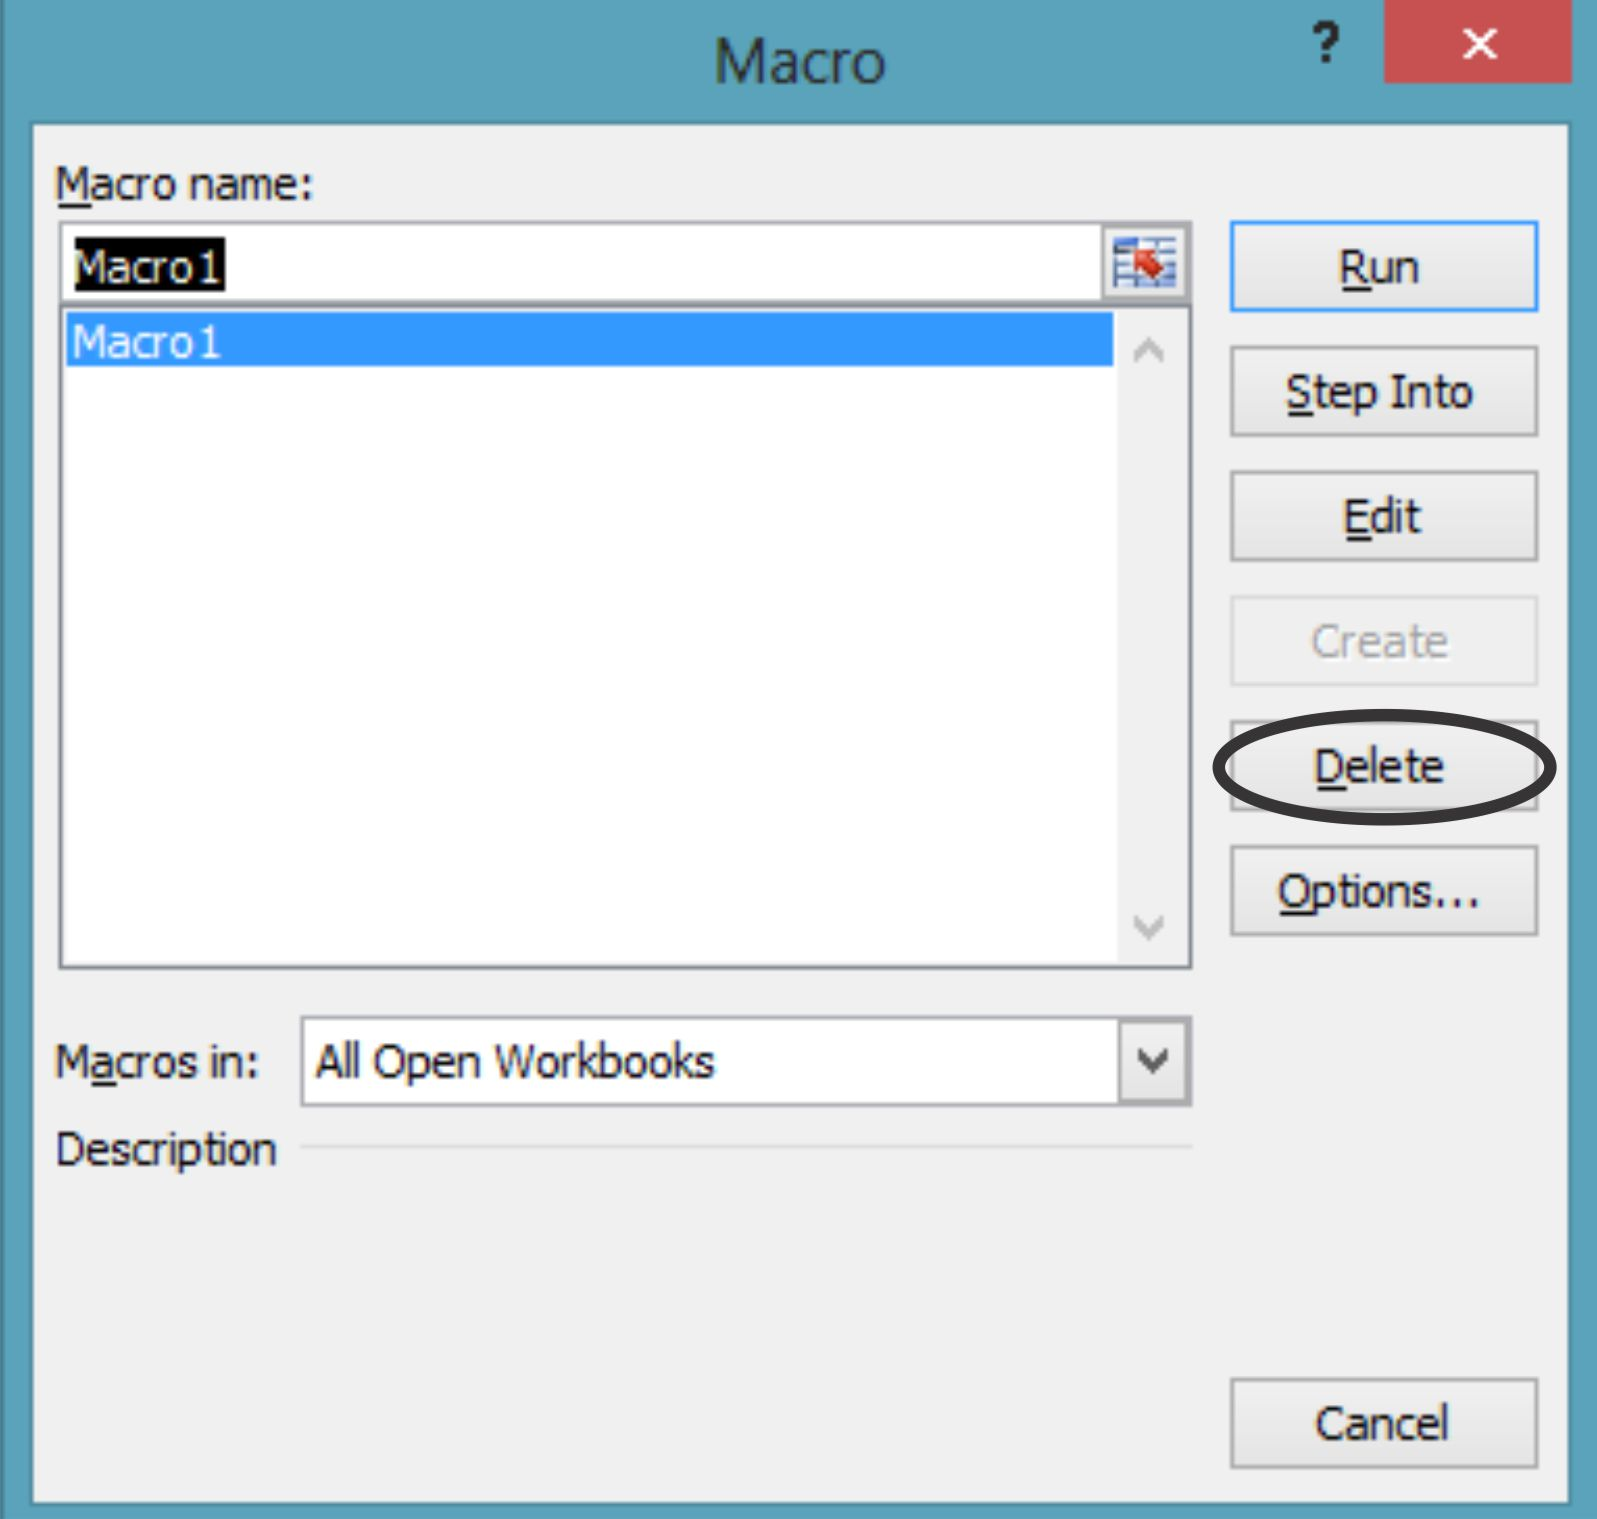 How To Edit And Delete Macros In Excel